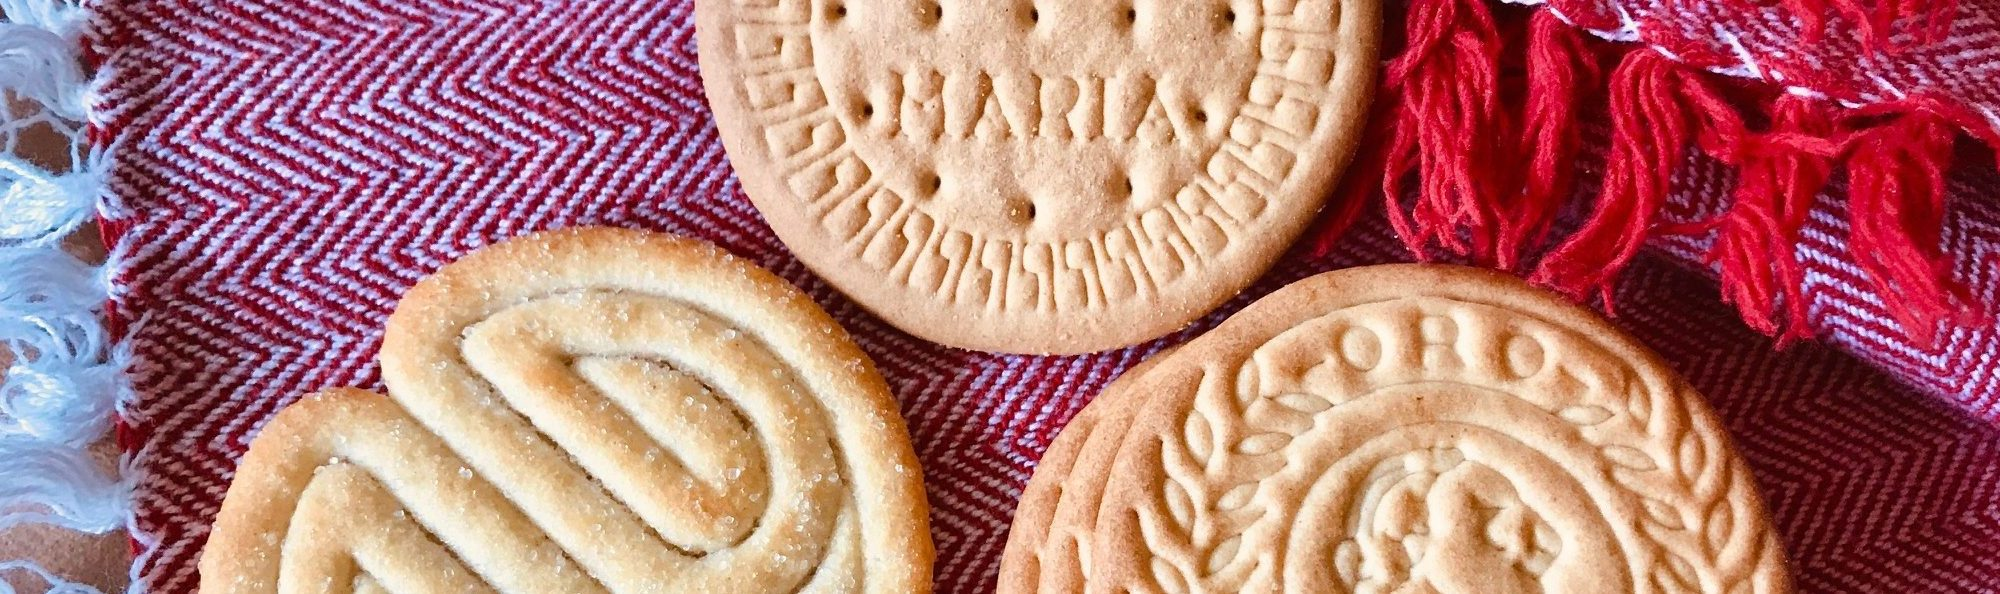 Maria cookies are common throughout the Spanish speaking world